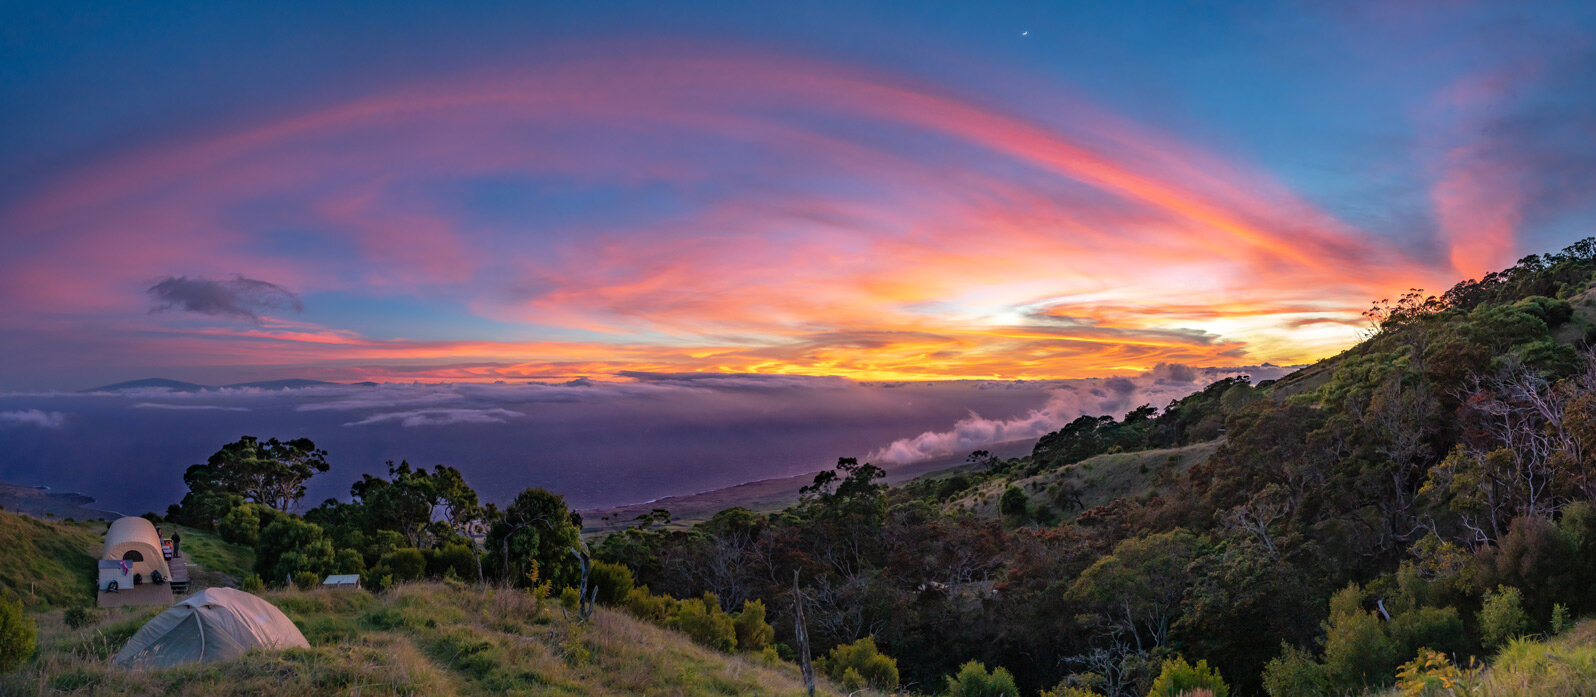 A panoramic perspective of a breathtaking sunset from camp. On the right, native forest blankets the gulch under a rising crescent moon, while the distant peaks of the Big Island emerge from the Pacific at left.